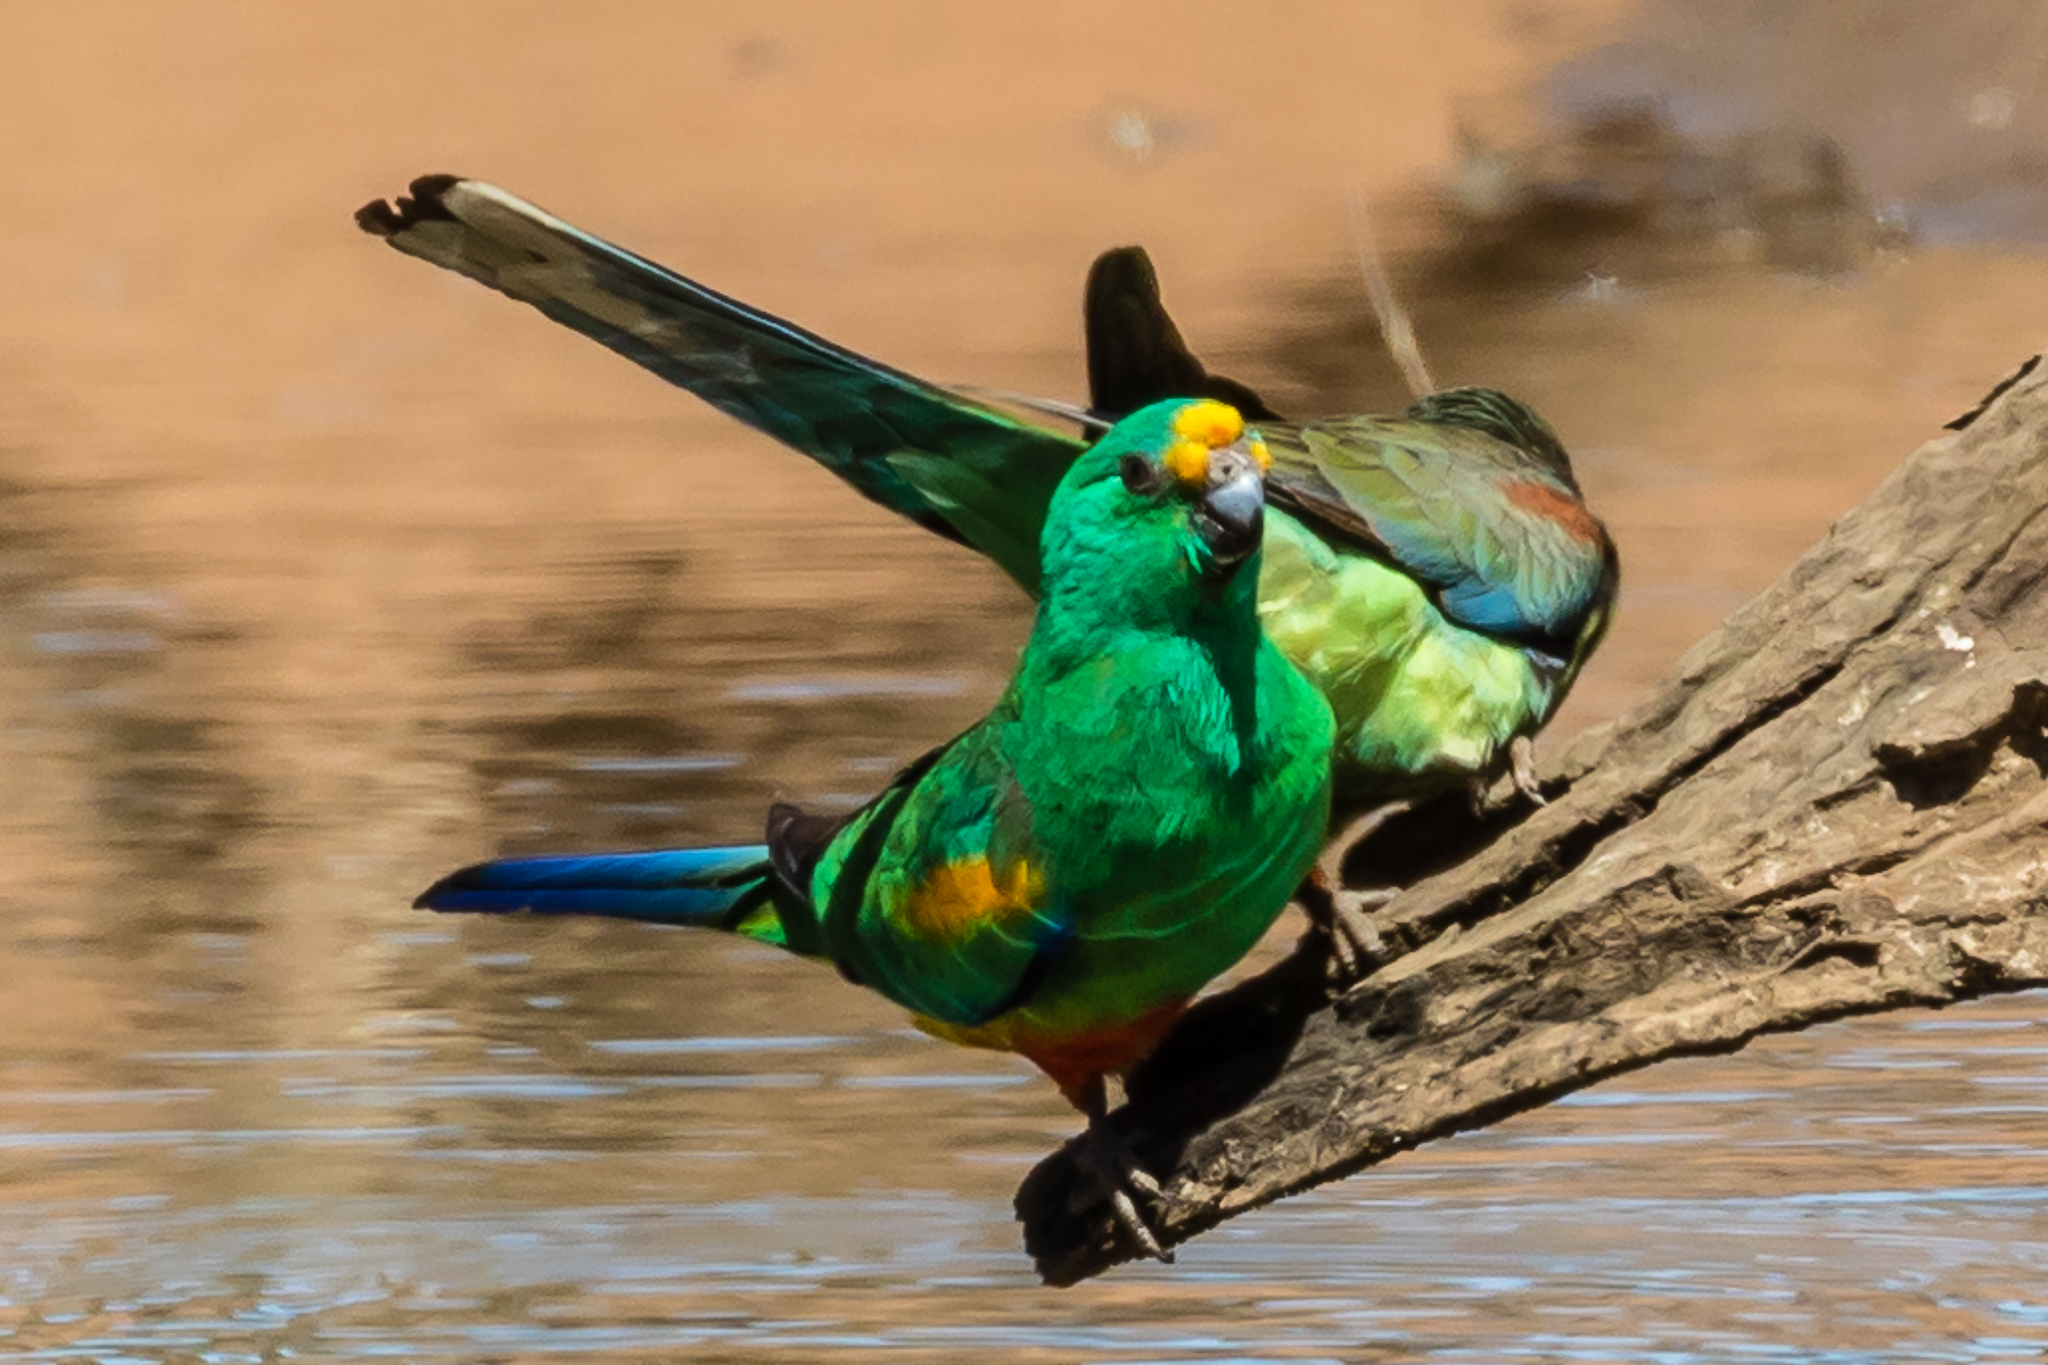 Mulga Parrots (30 cm) inhabit the inland semi-dry areas; the mallees, mulgas and saltbushes of the southern half of Australia. Mulga Parrots eat the seeds of grasses and trees, flowers, fruit and insect larvae.